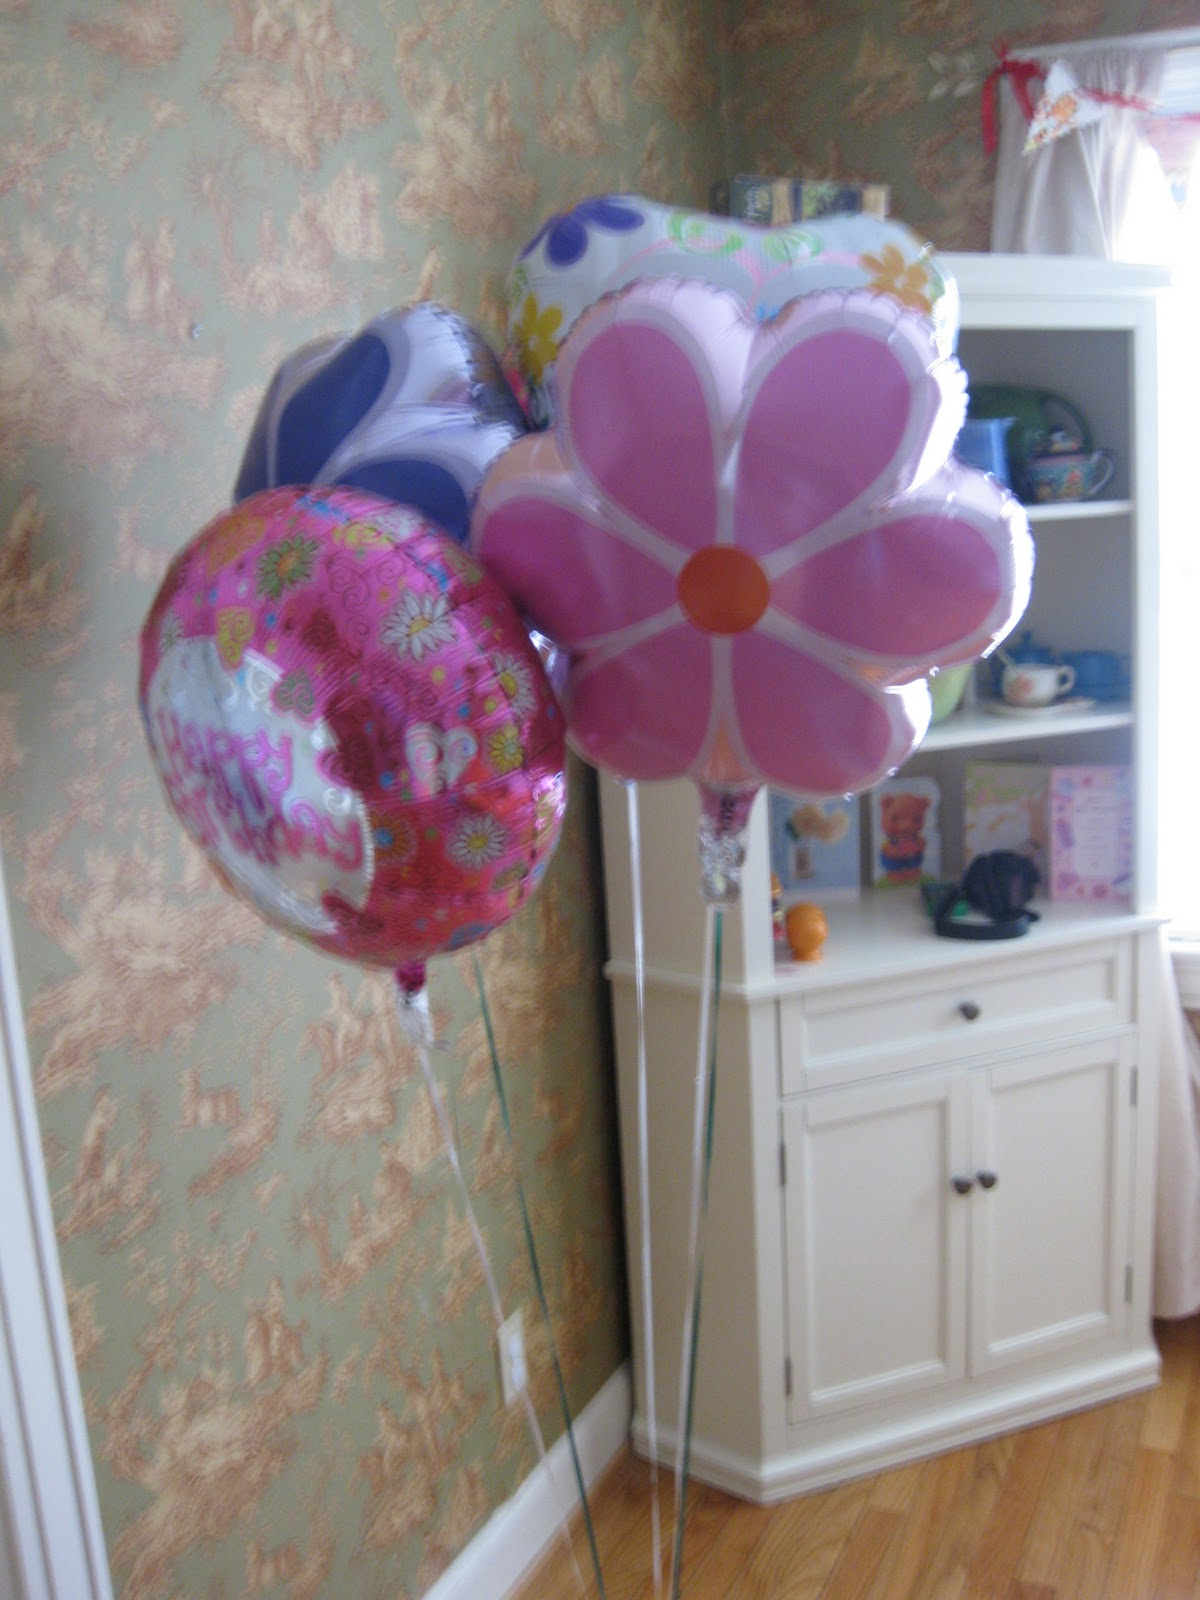 We Also Got Some Helium Balloons As A Little Present To E These Were From Dollar Tree So They Each